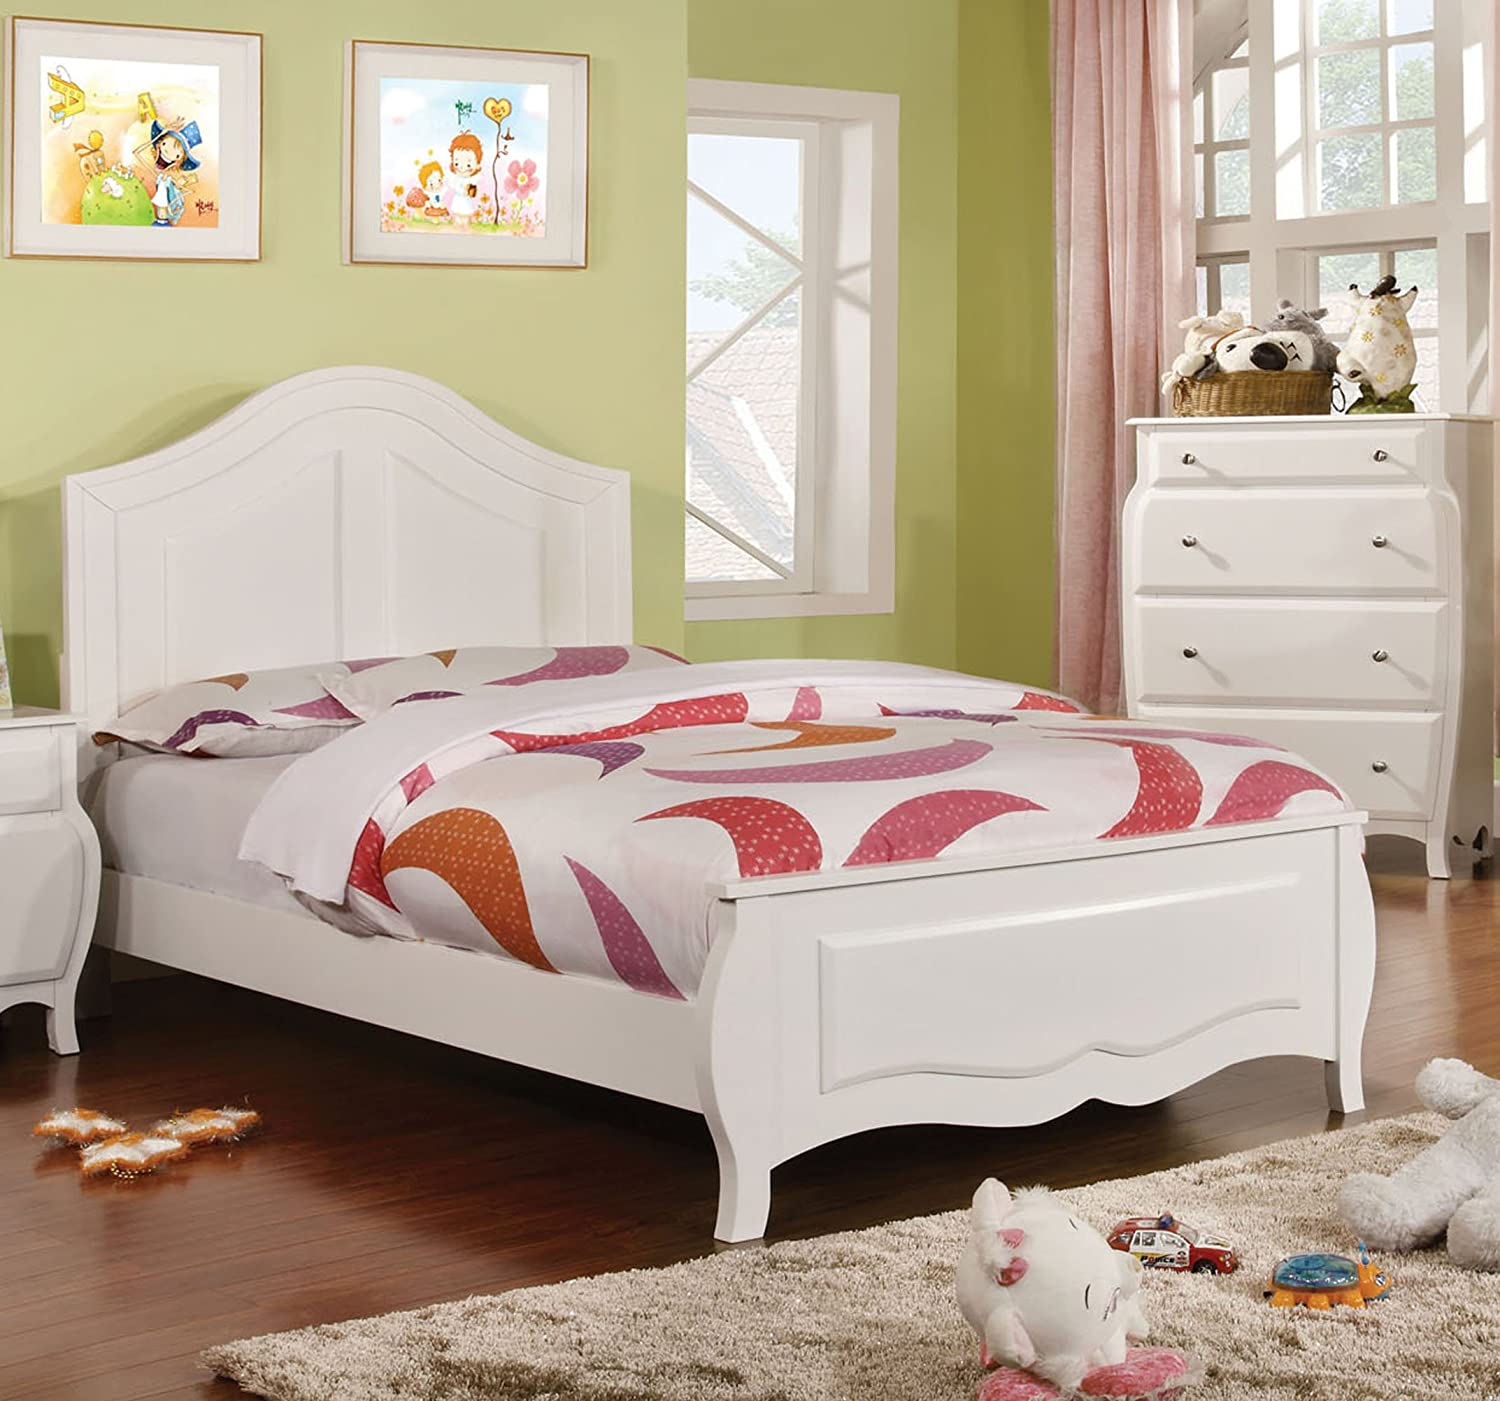 Amazon.com: Furniture Of America Lionel Size Youth Bedroom, Twin, White:  Kitchen U0026 Dining